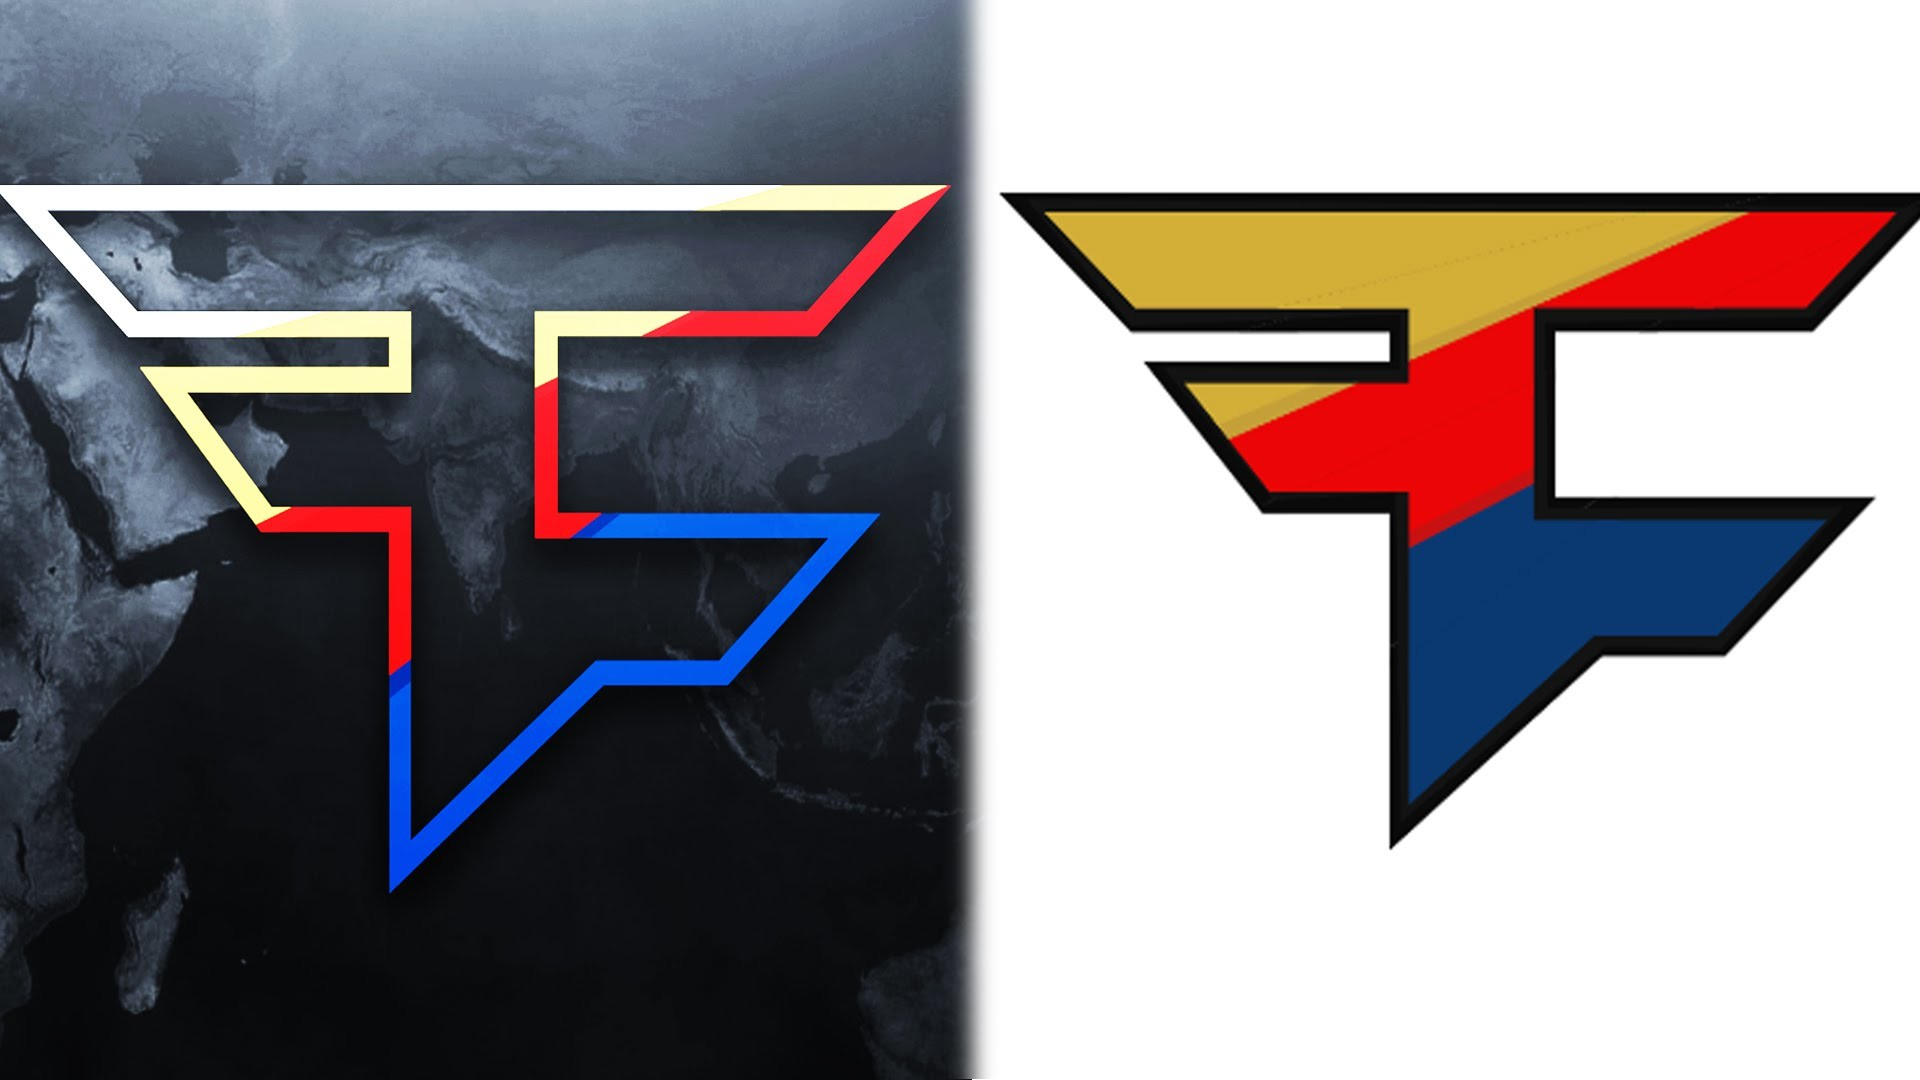 What 39 S The Secret Of Faze 2 0 Rug Gets Threatened Chief